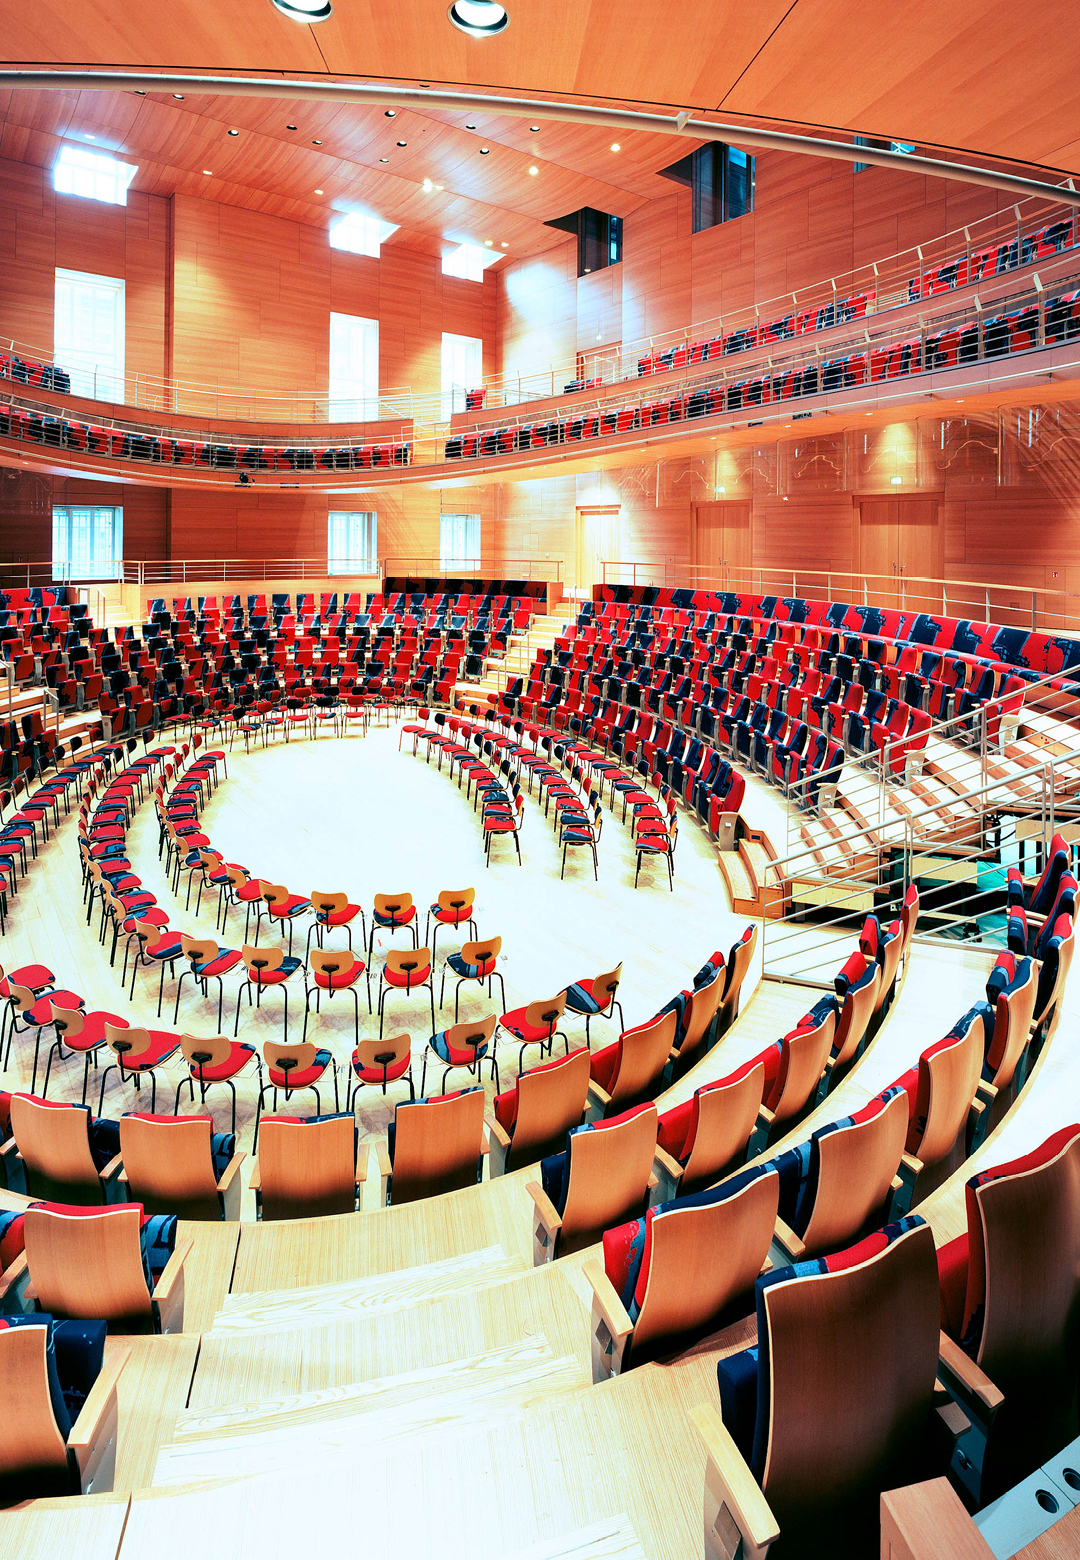 Berlin's Pierre Boulez Saal concert hall, designed by renowned architect Frank Gehry   The Gold Projections   Joe Ramirez   STIRworld